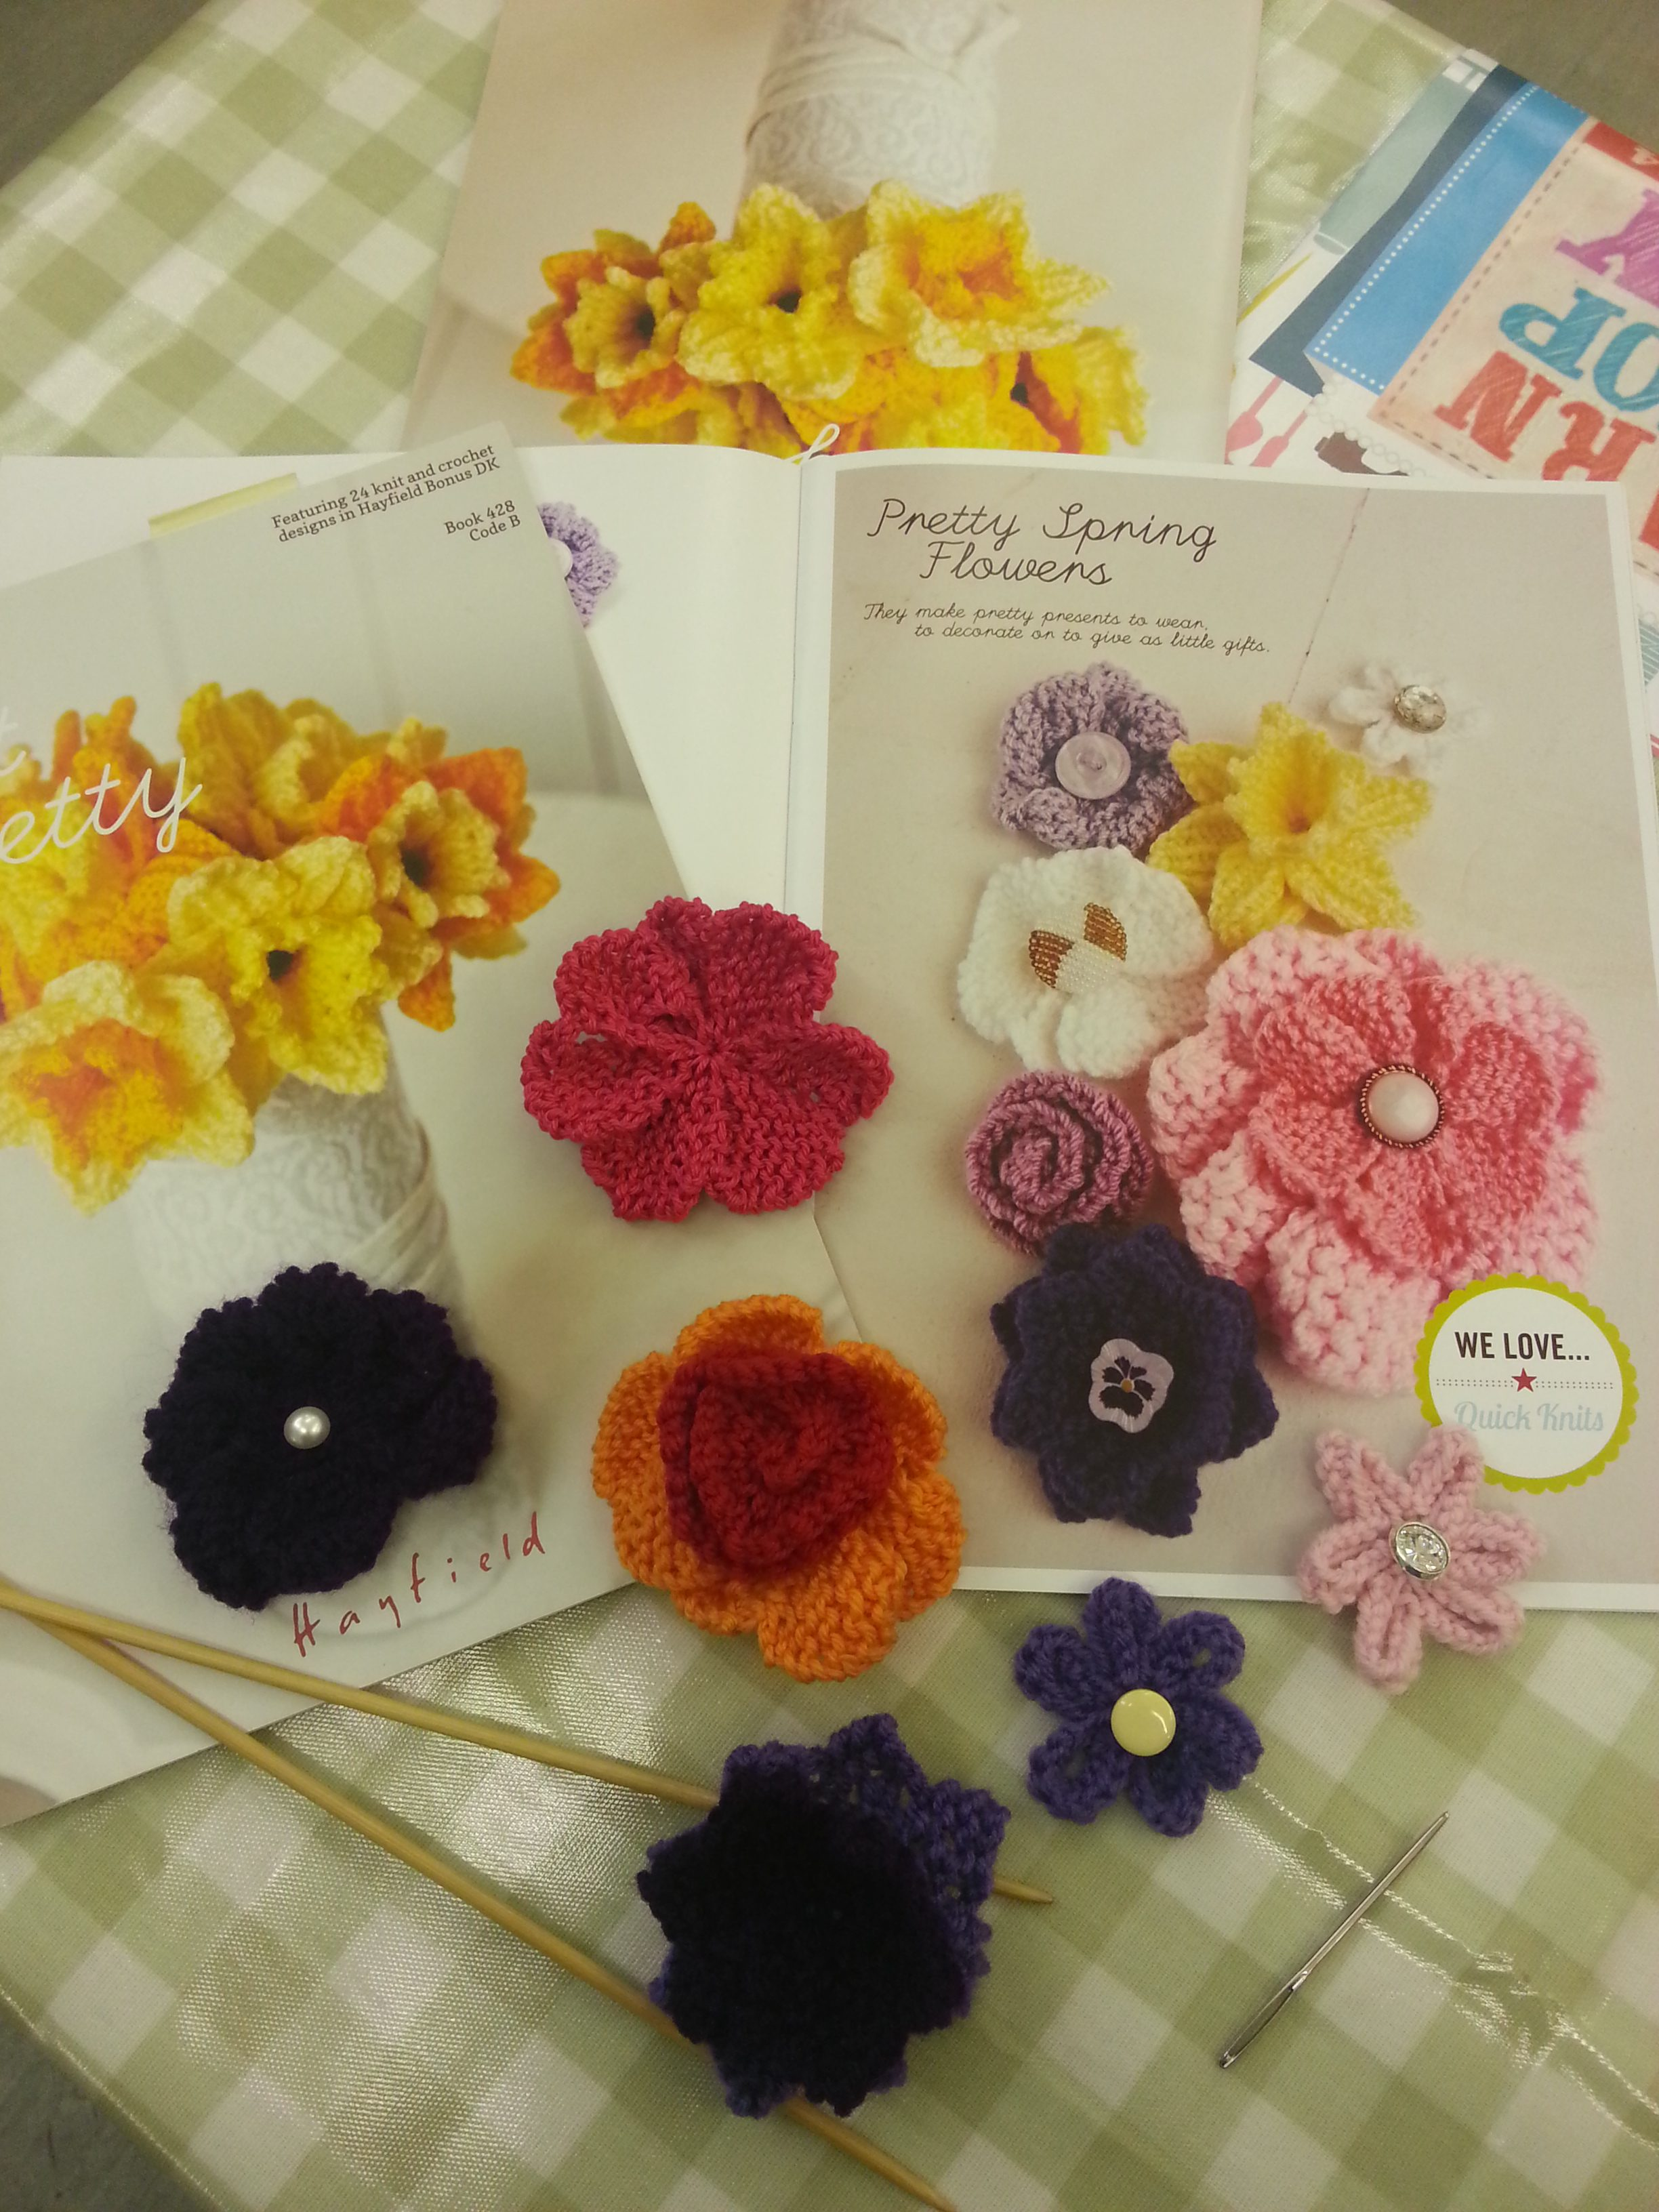 Intermediate knitting class with Debbie Tomkies of DT Craft & Design